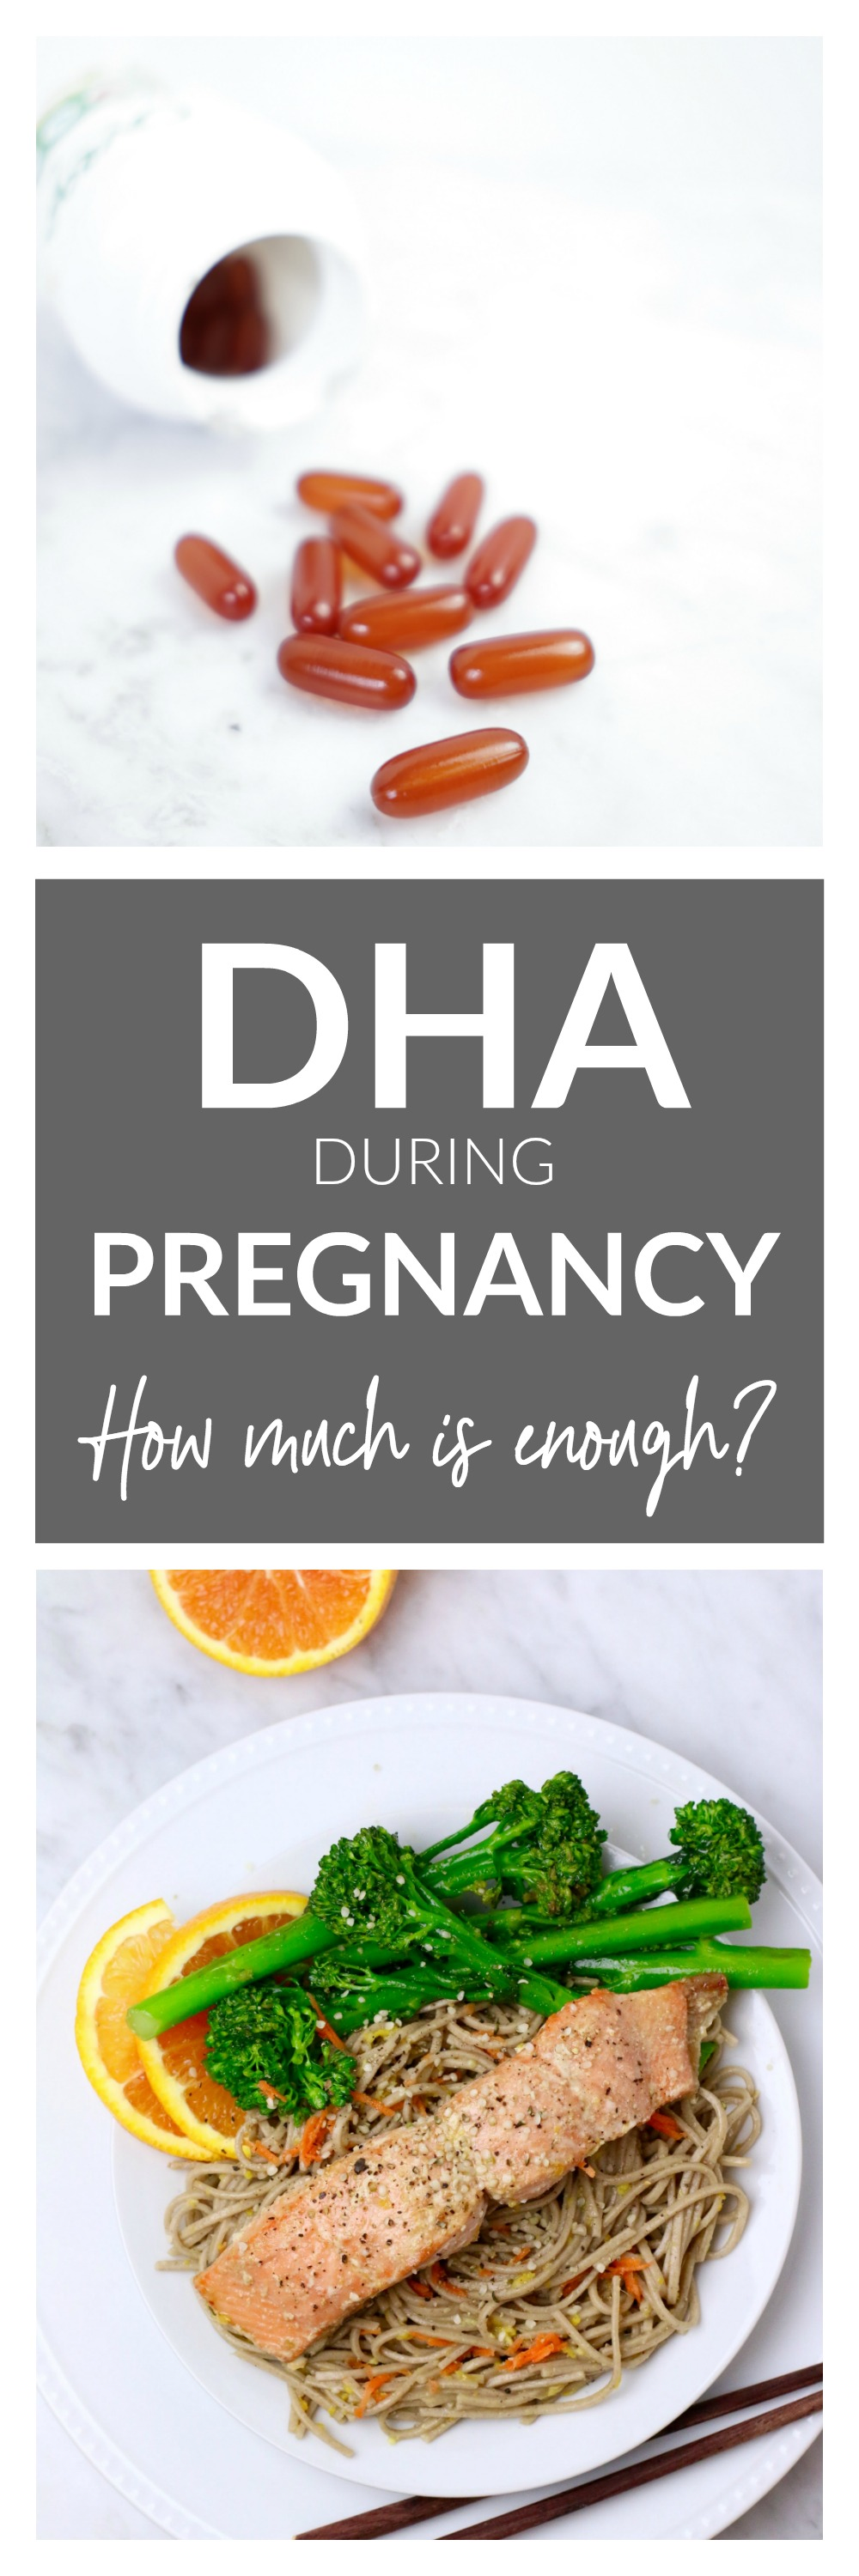 DHA During Pregnancy - How Much is Enough